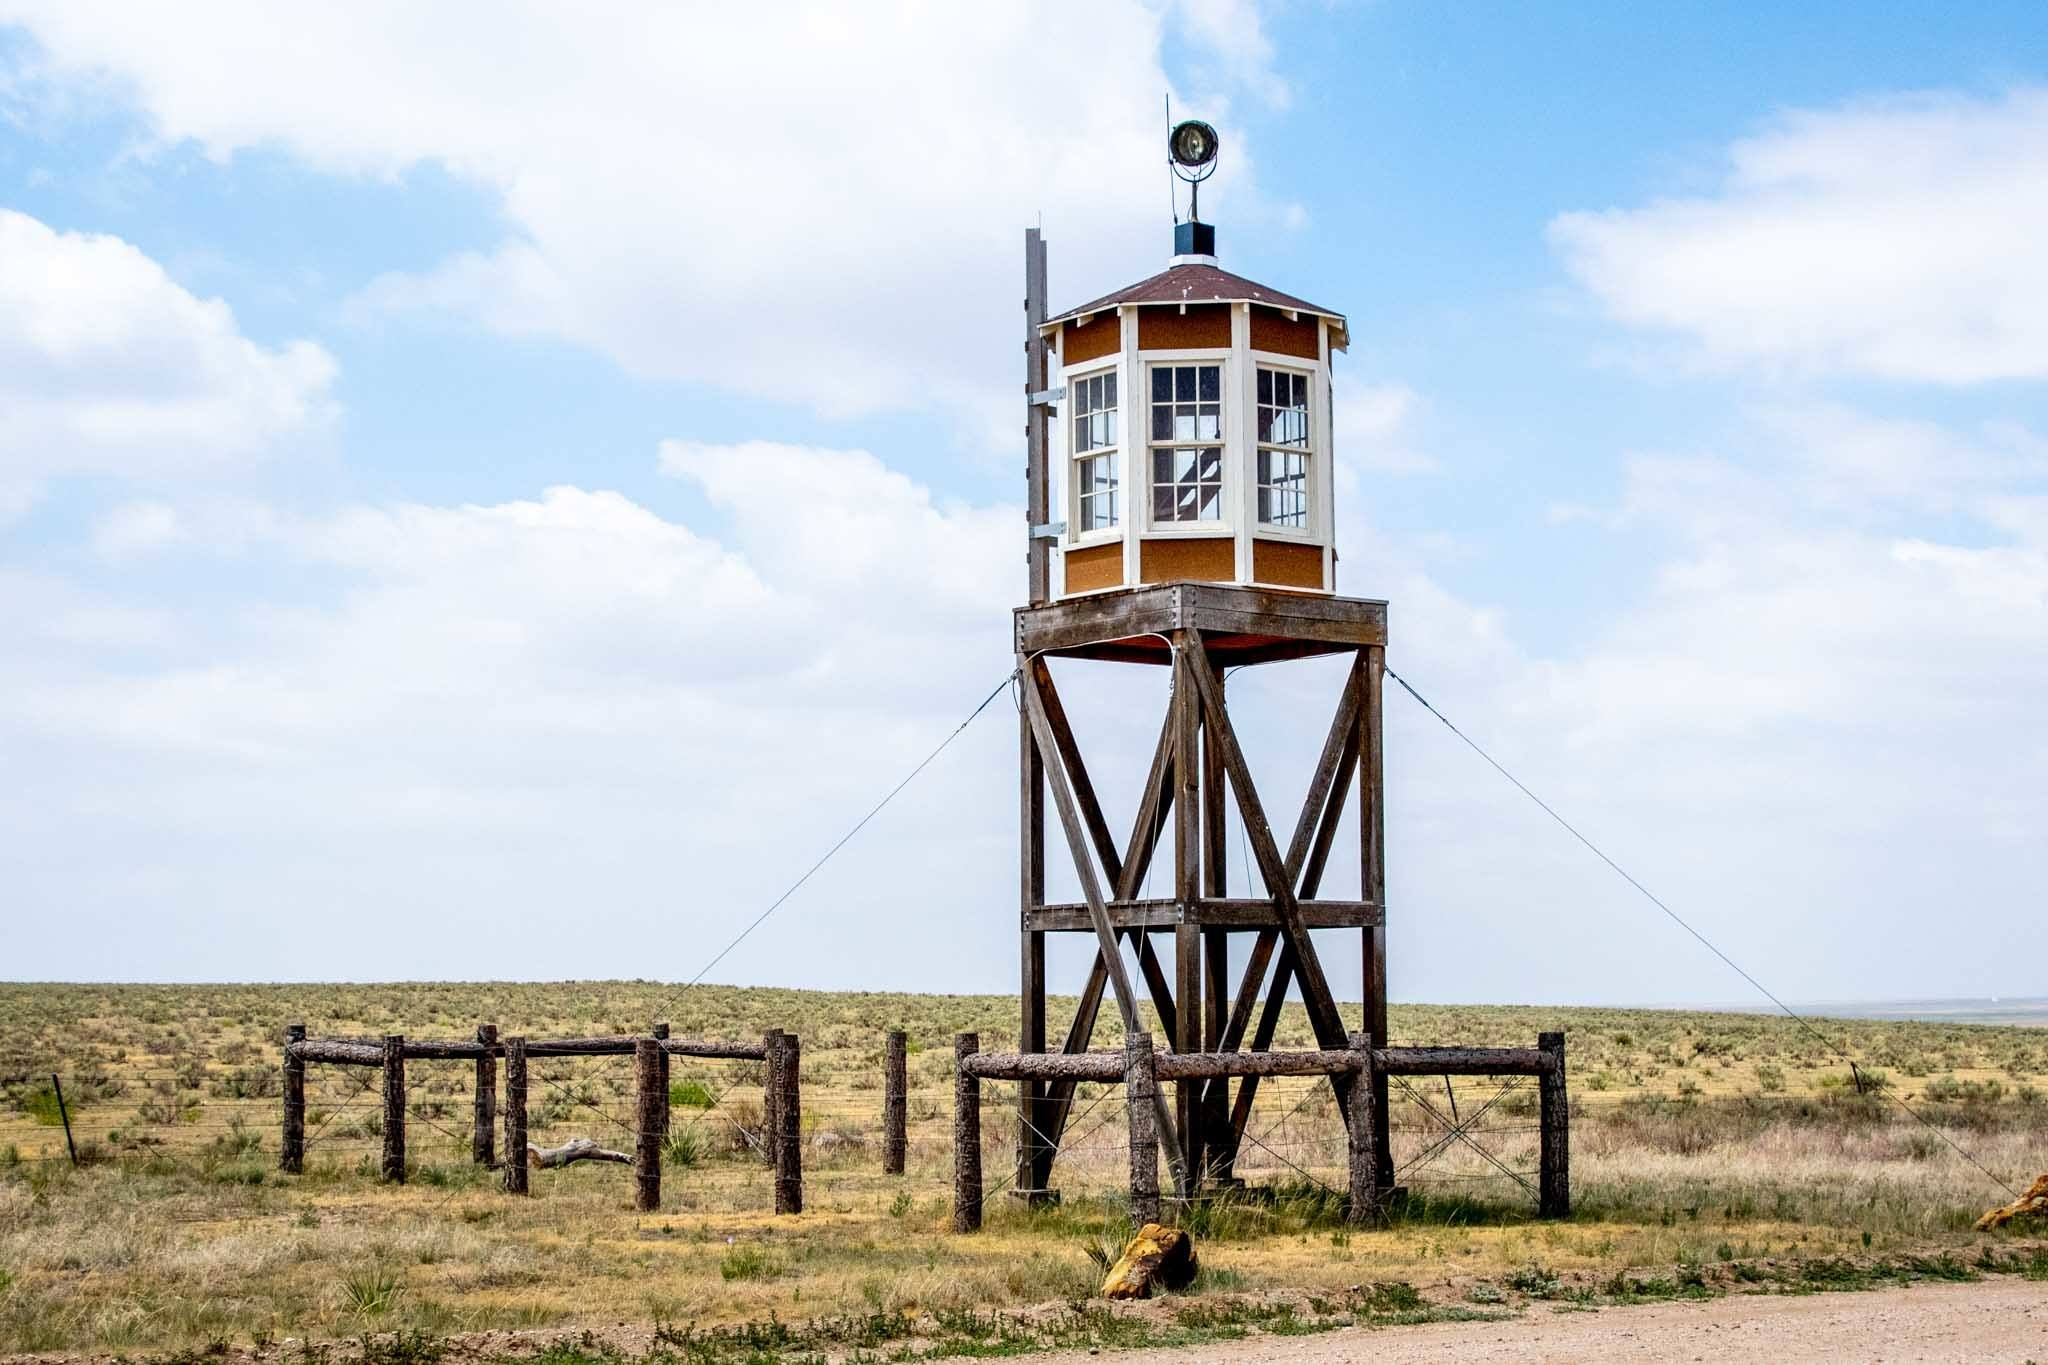 The Camp Amache guard tower in Colorado